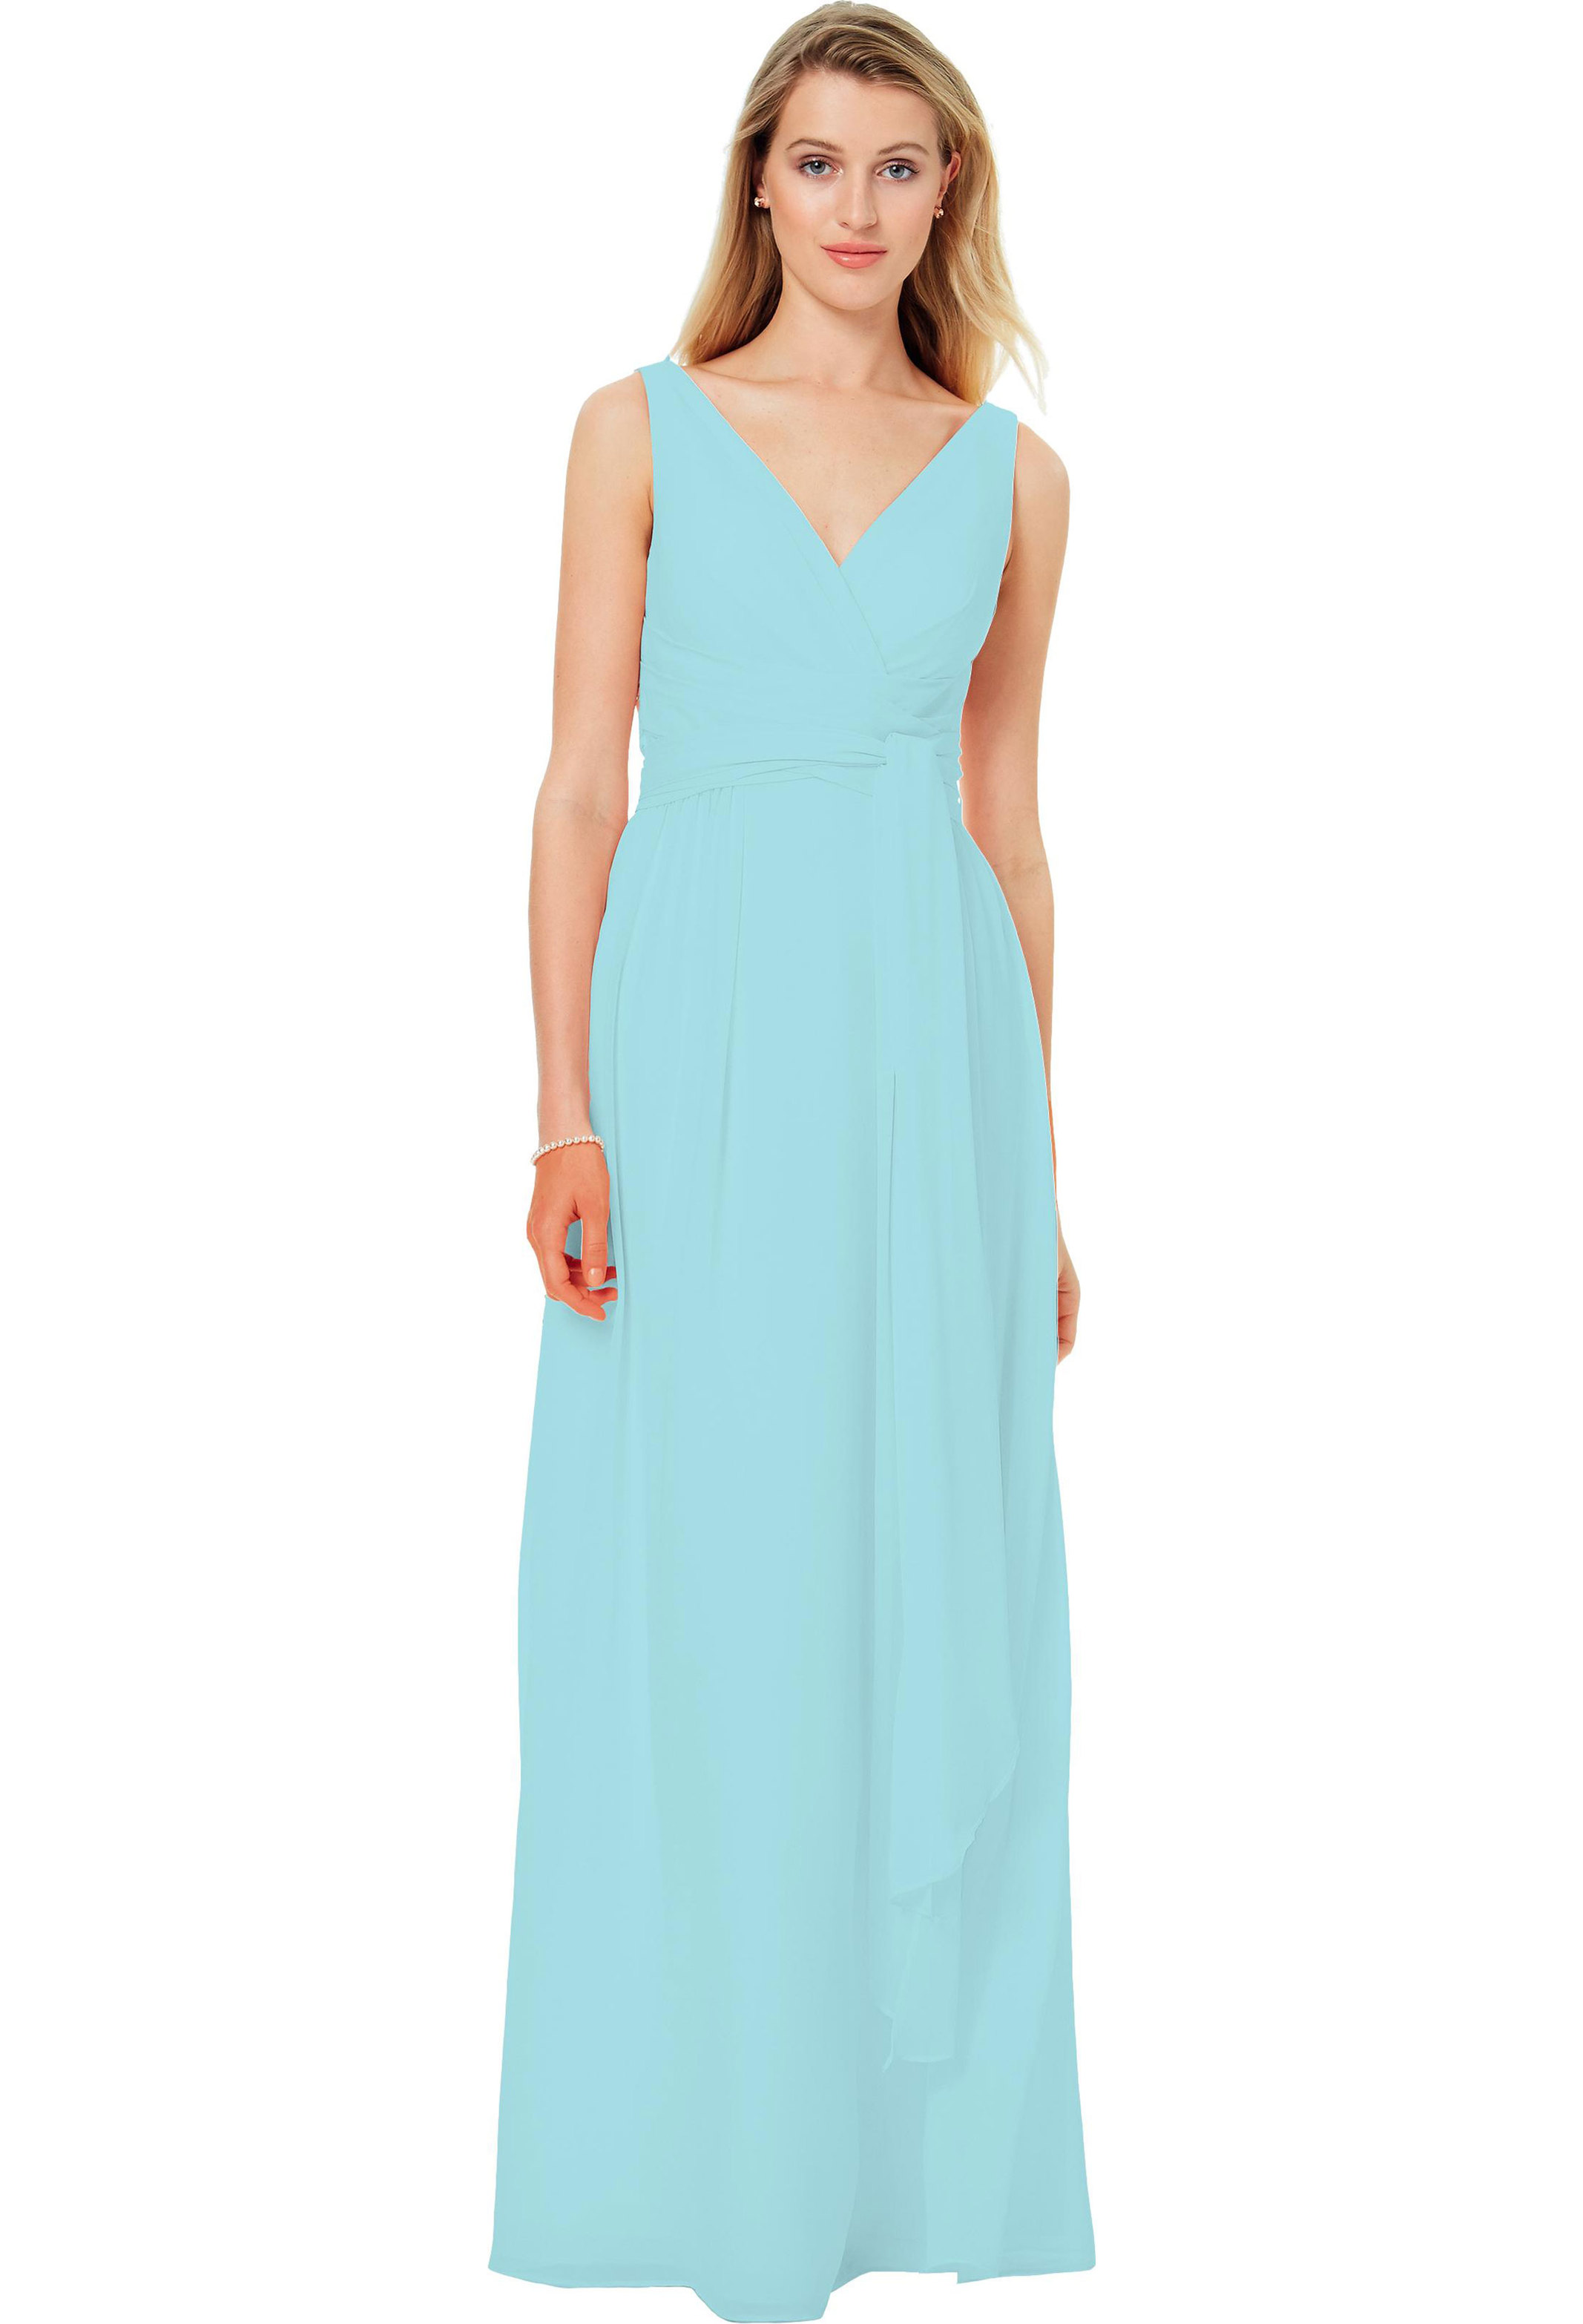 Bill Levkoff GLACIER Chiffon Sleeveless A-line gown, $220.00 Front